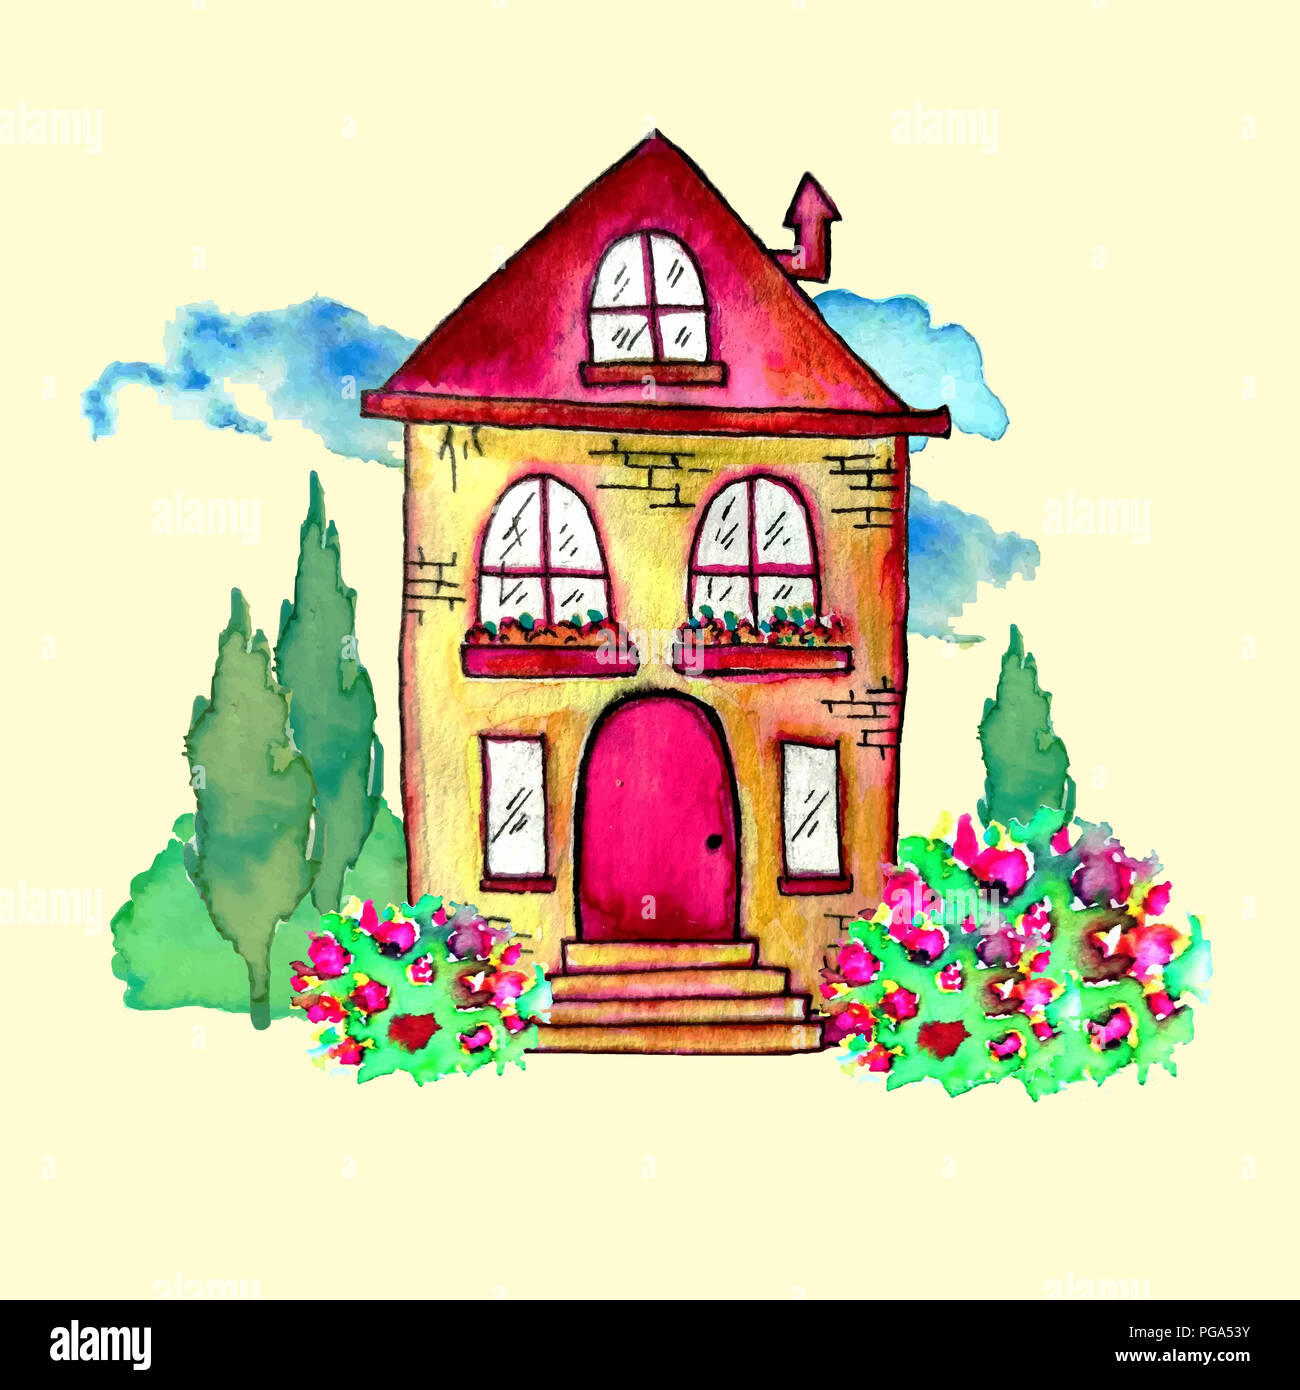 Cute watercolor landscape with house and garden. Sweet home concept. Hand painted card with happy house, blue clouds, bushes, and flowers. Raster - Stock Image